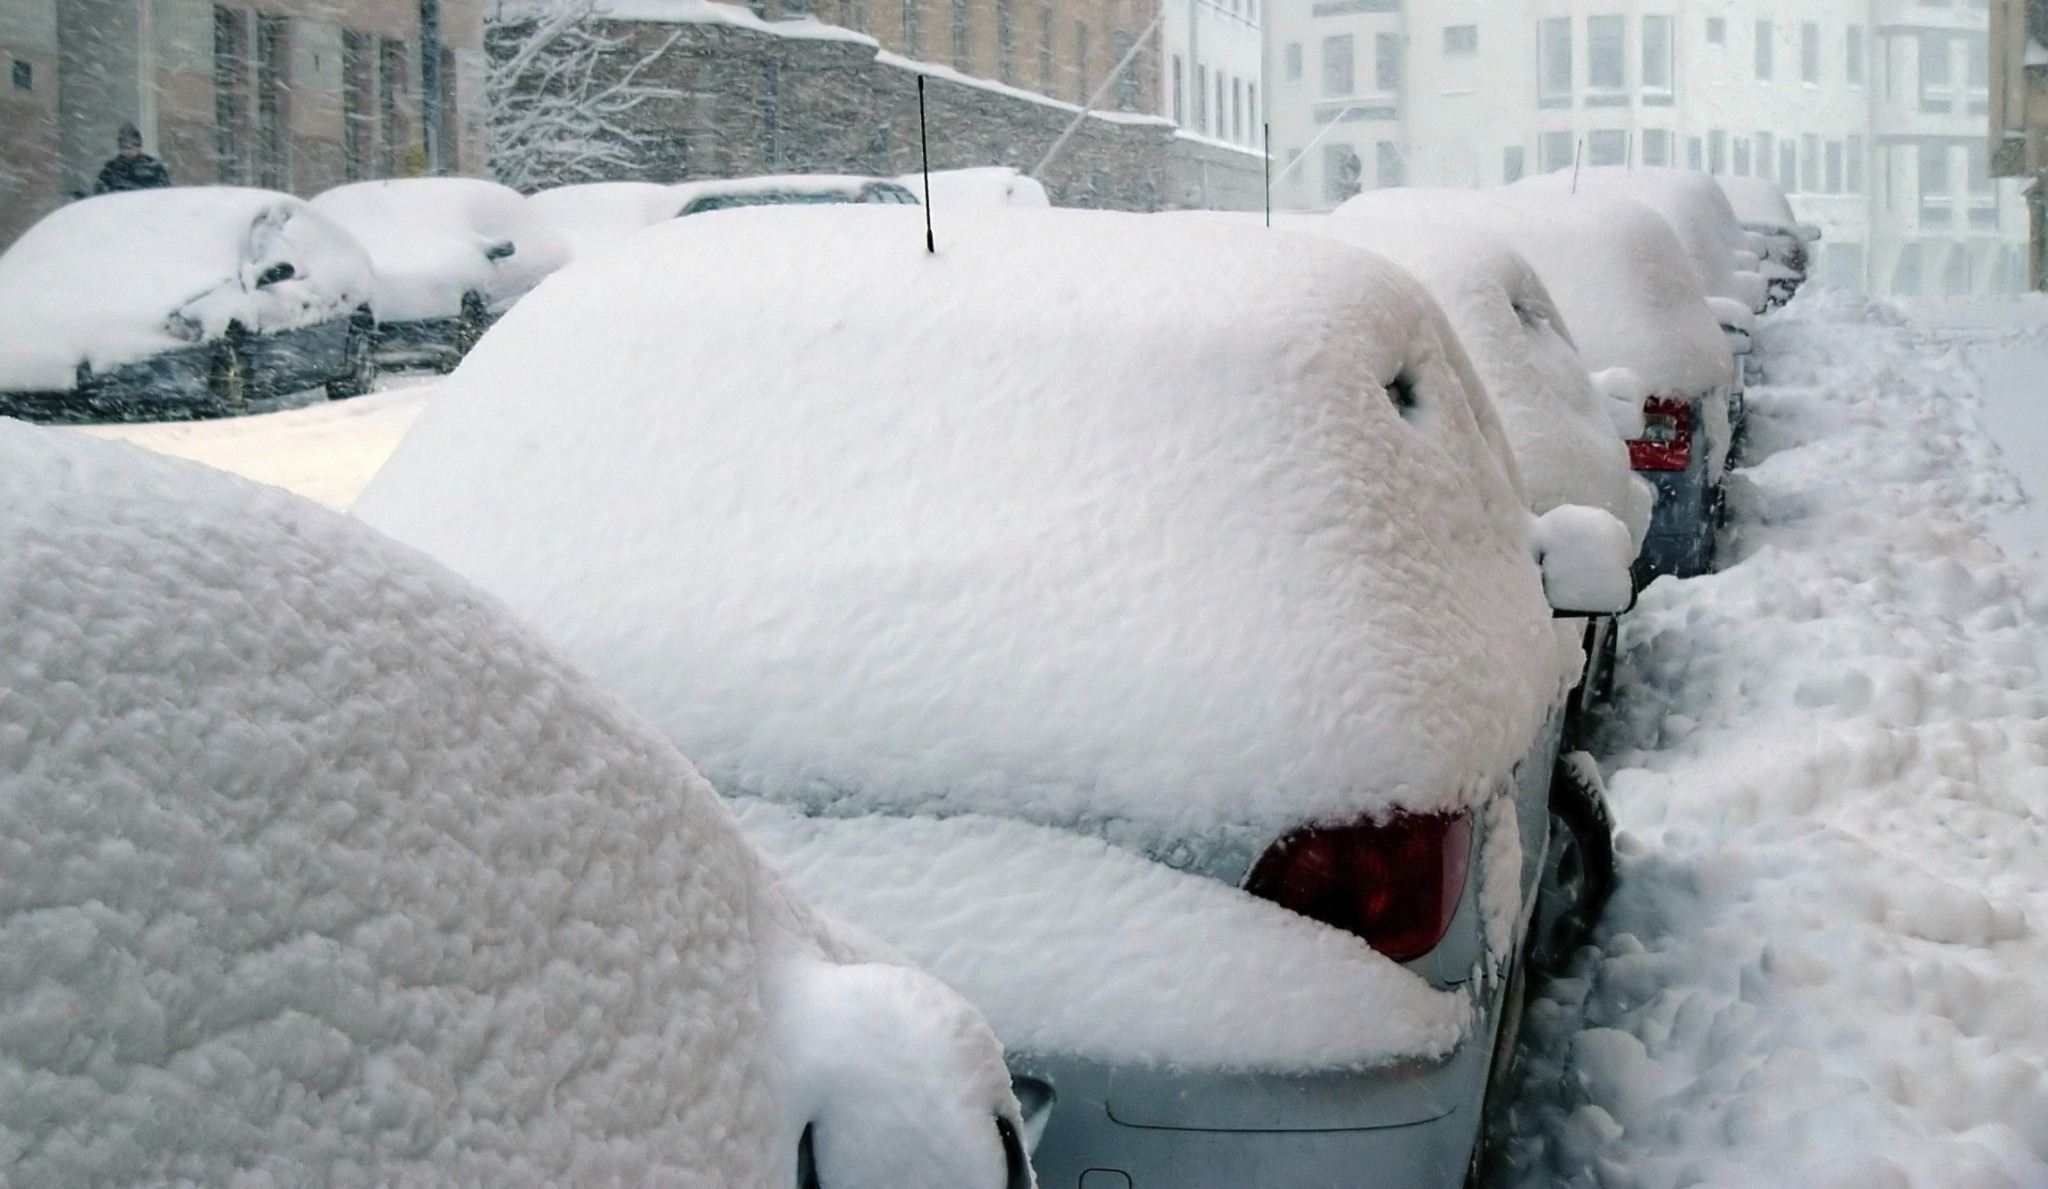 Snowbound cars Property Rights for Shoveling